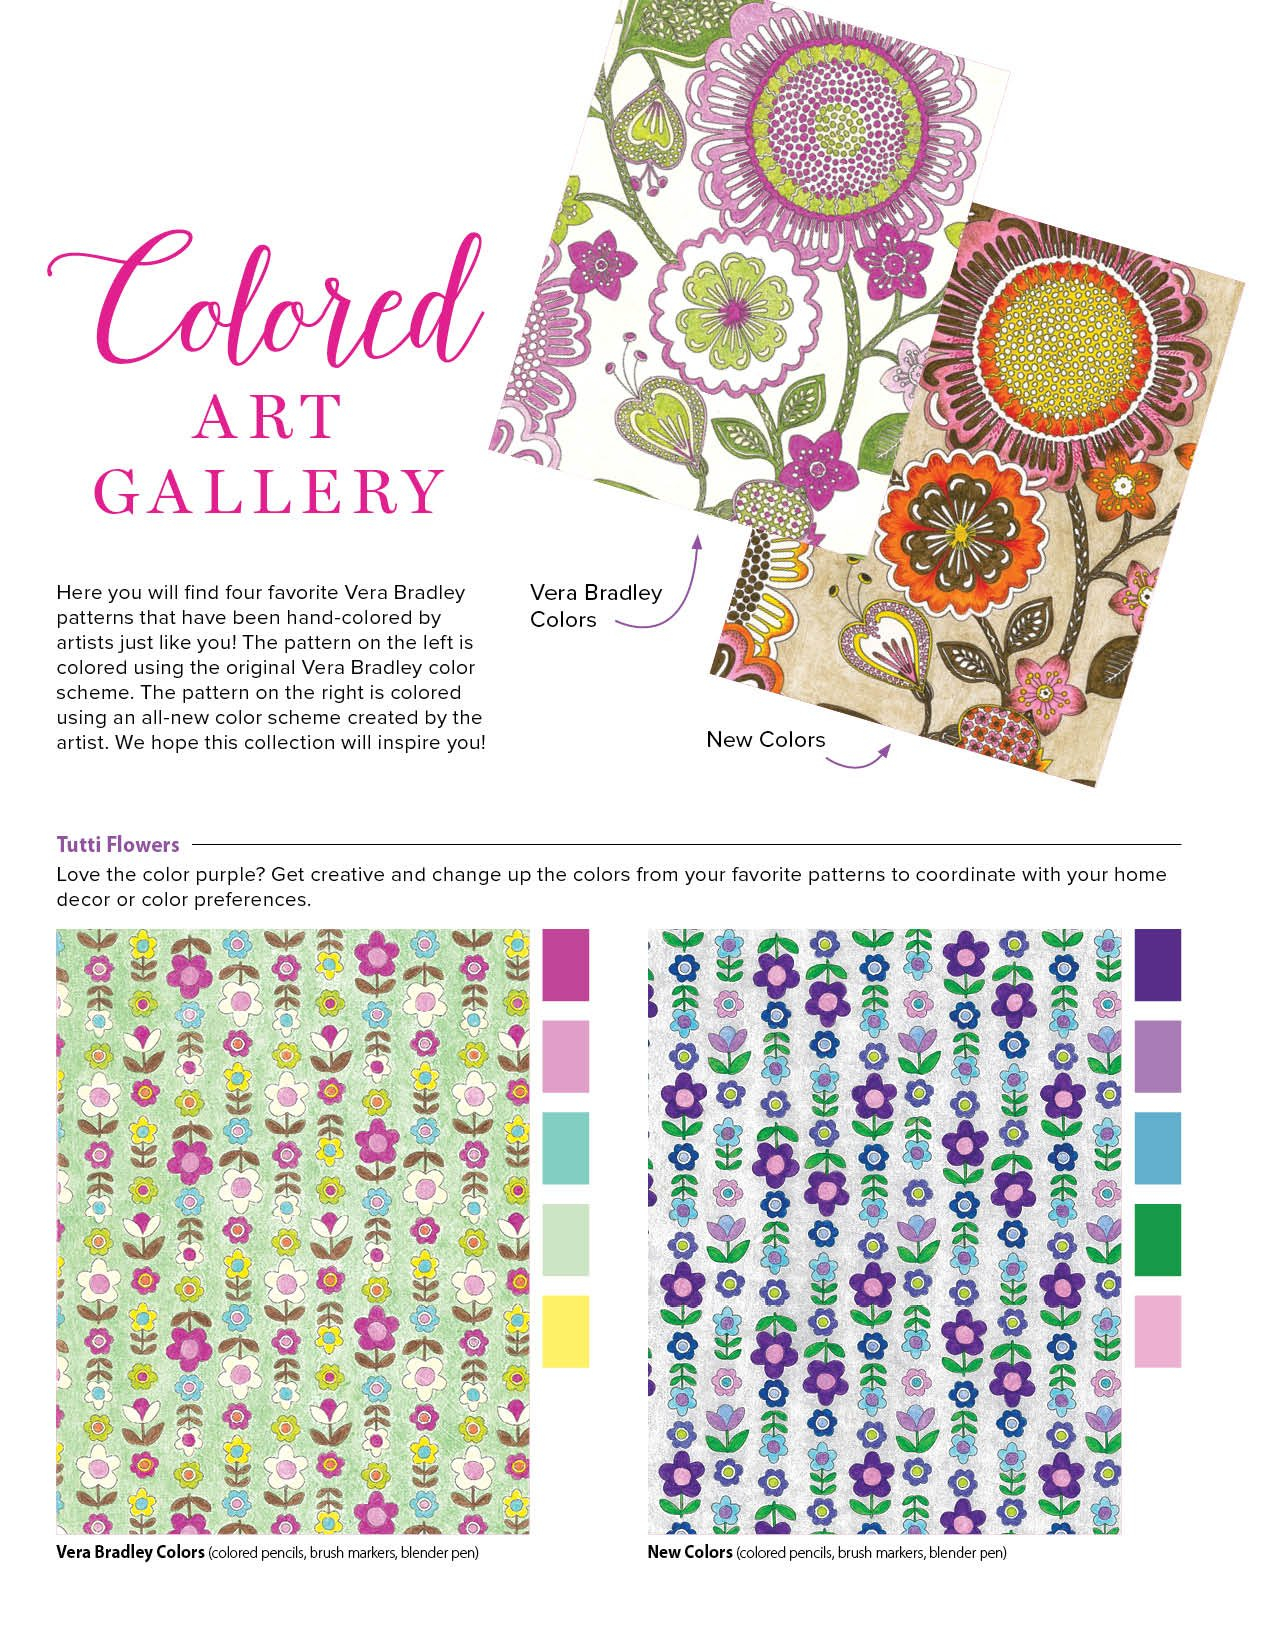 Vera Bradley Coloring Pages  to Print 16c - To print for your project